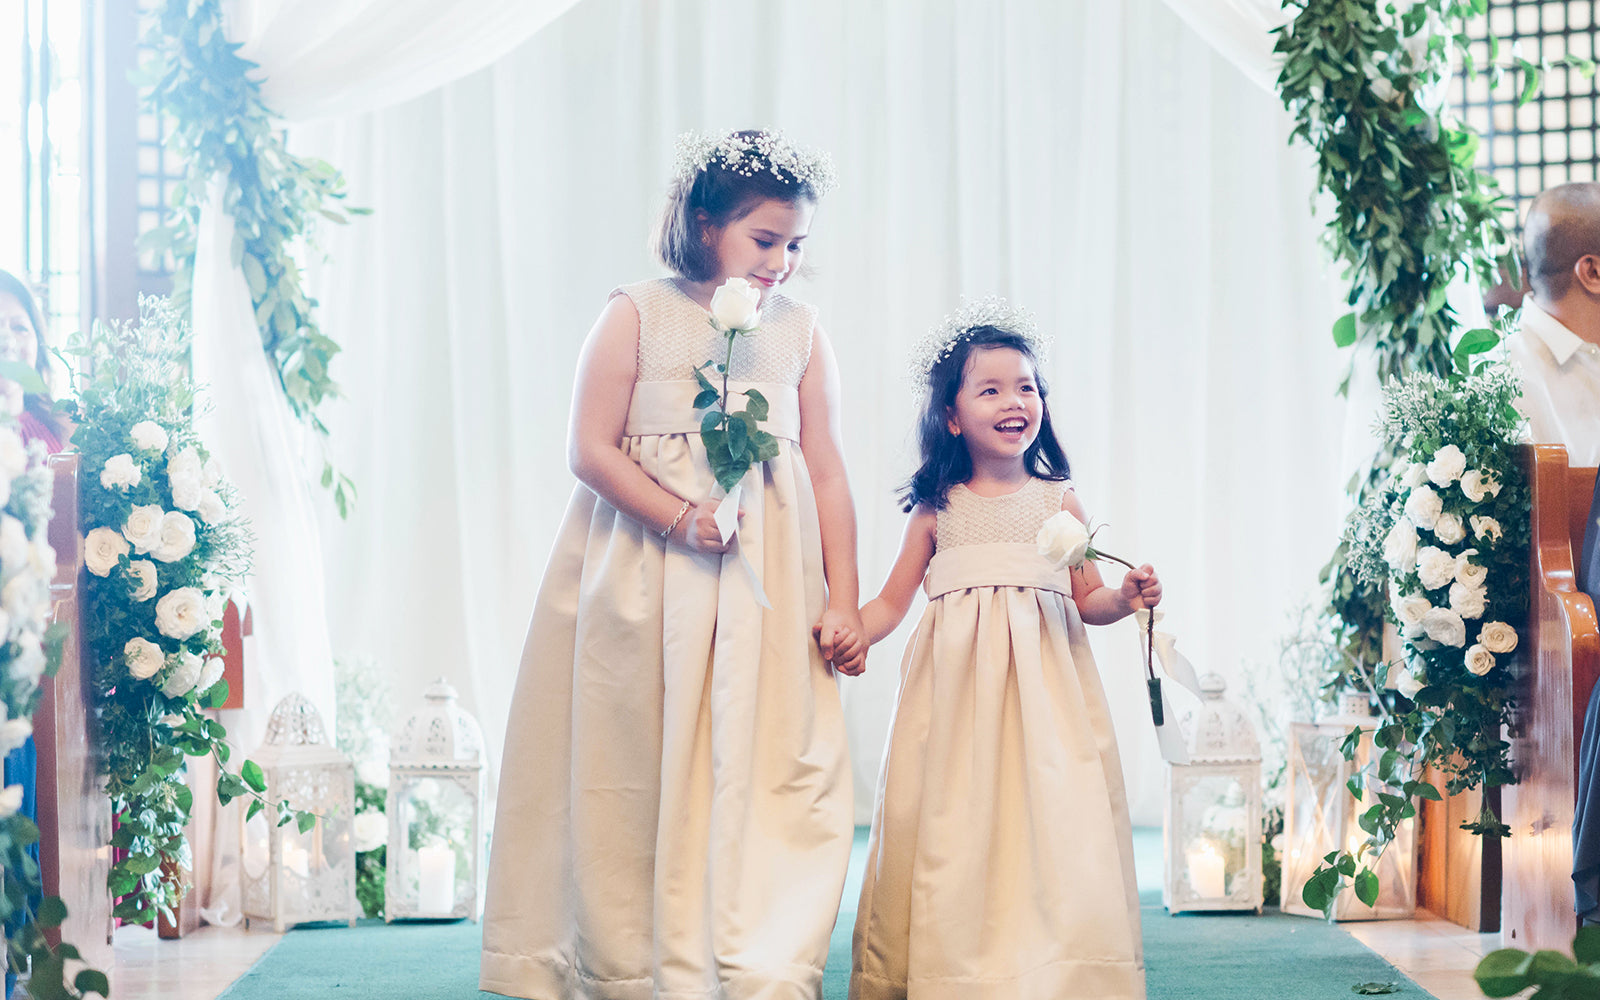 Ines Moda Infantil Wedding entourage dresses